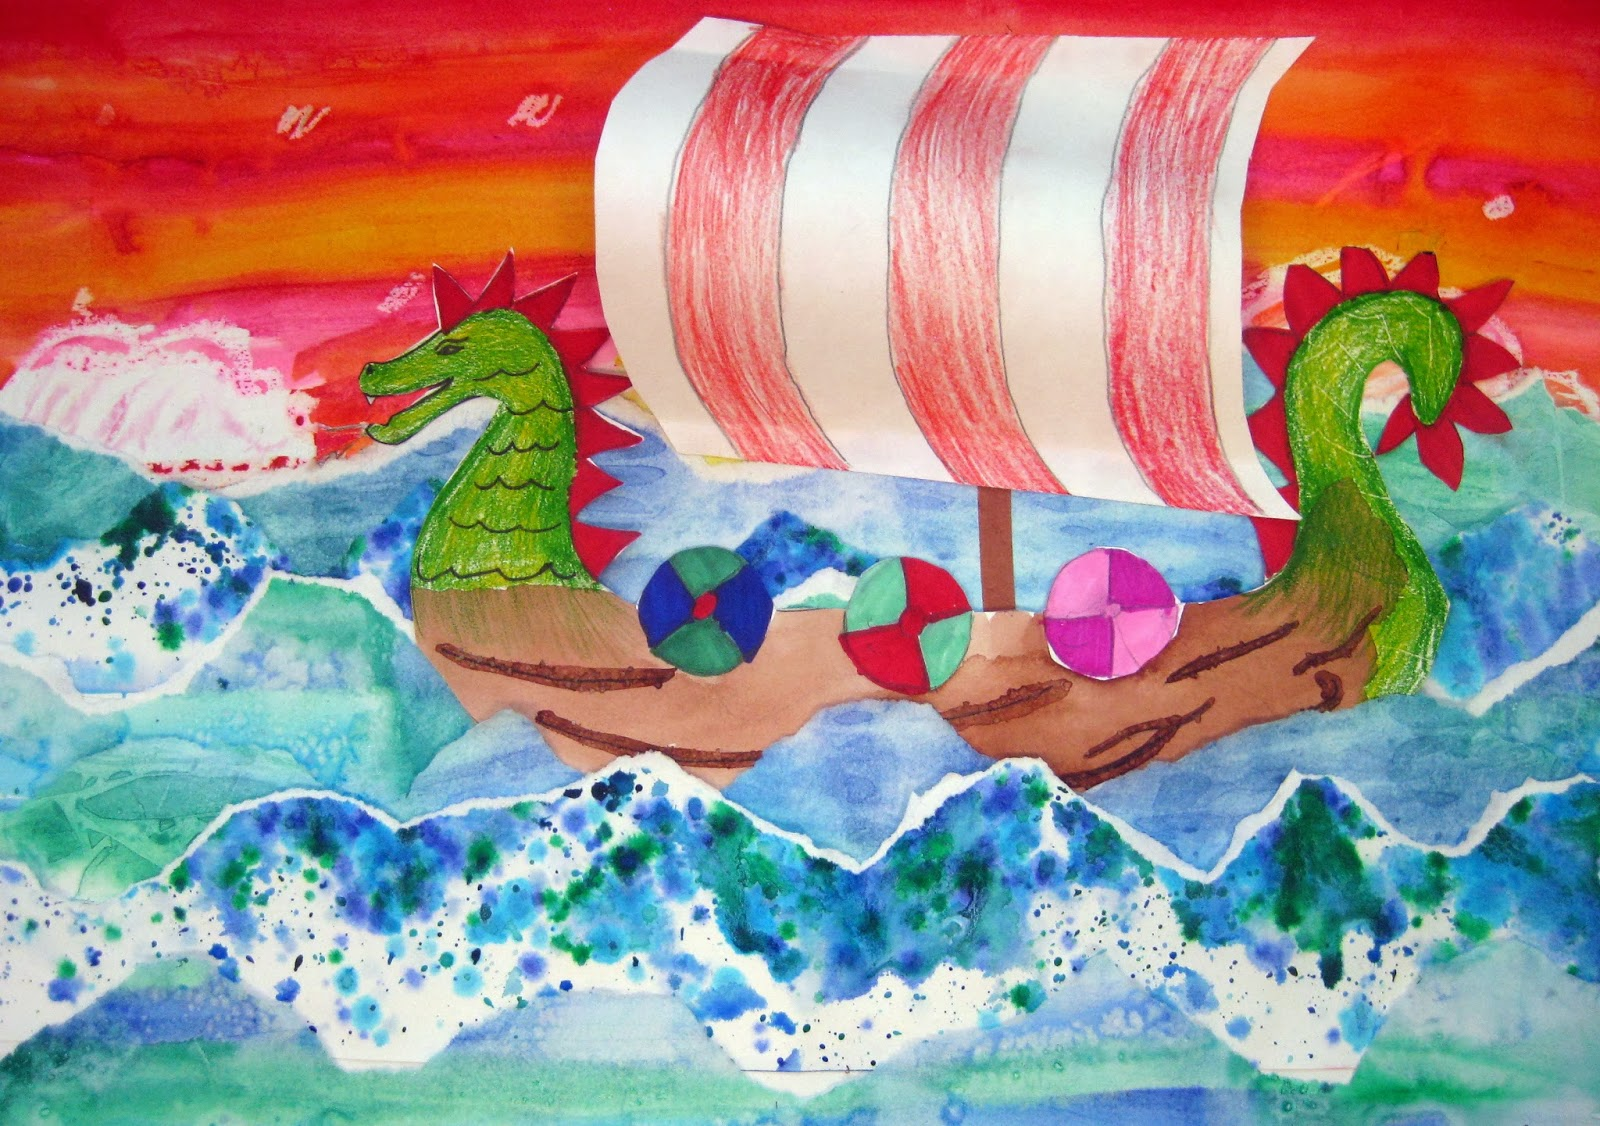 cassie stephens in the artroom 4th grade viking ships